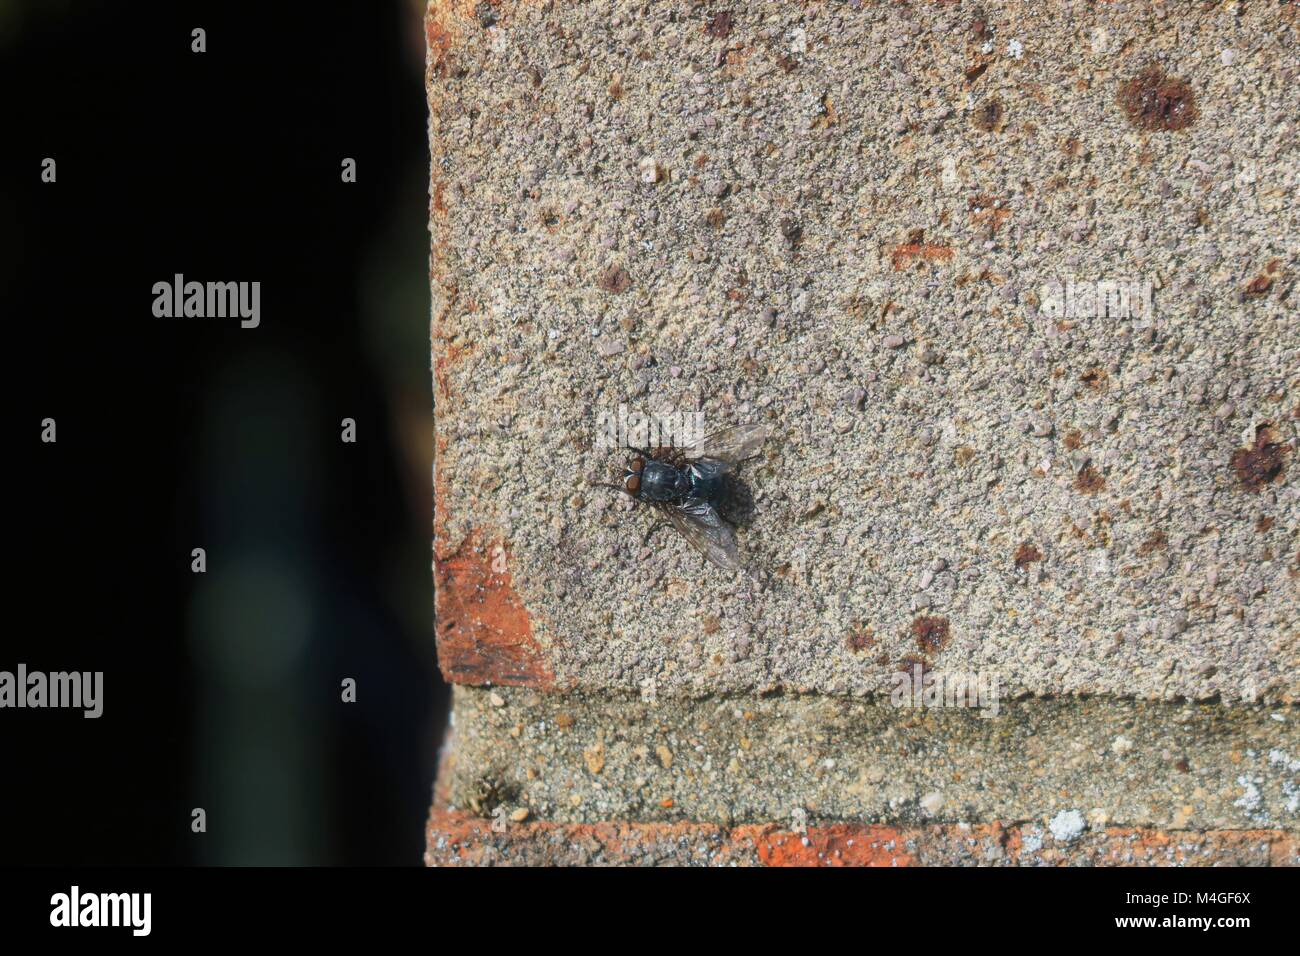 Fly on a brick wall - Stock Image